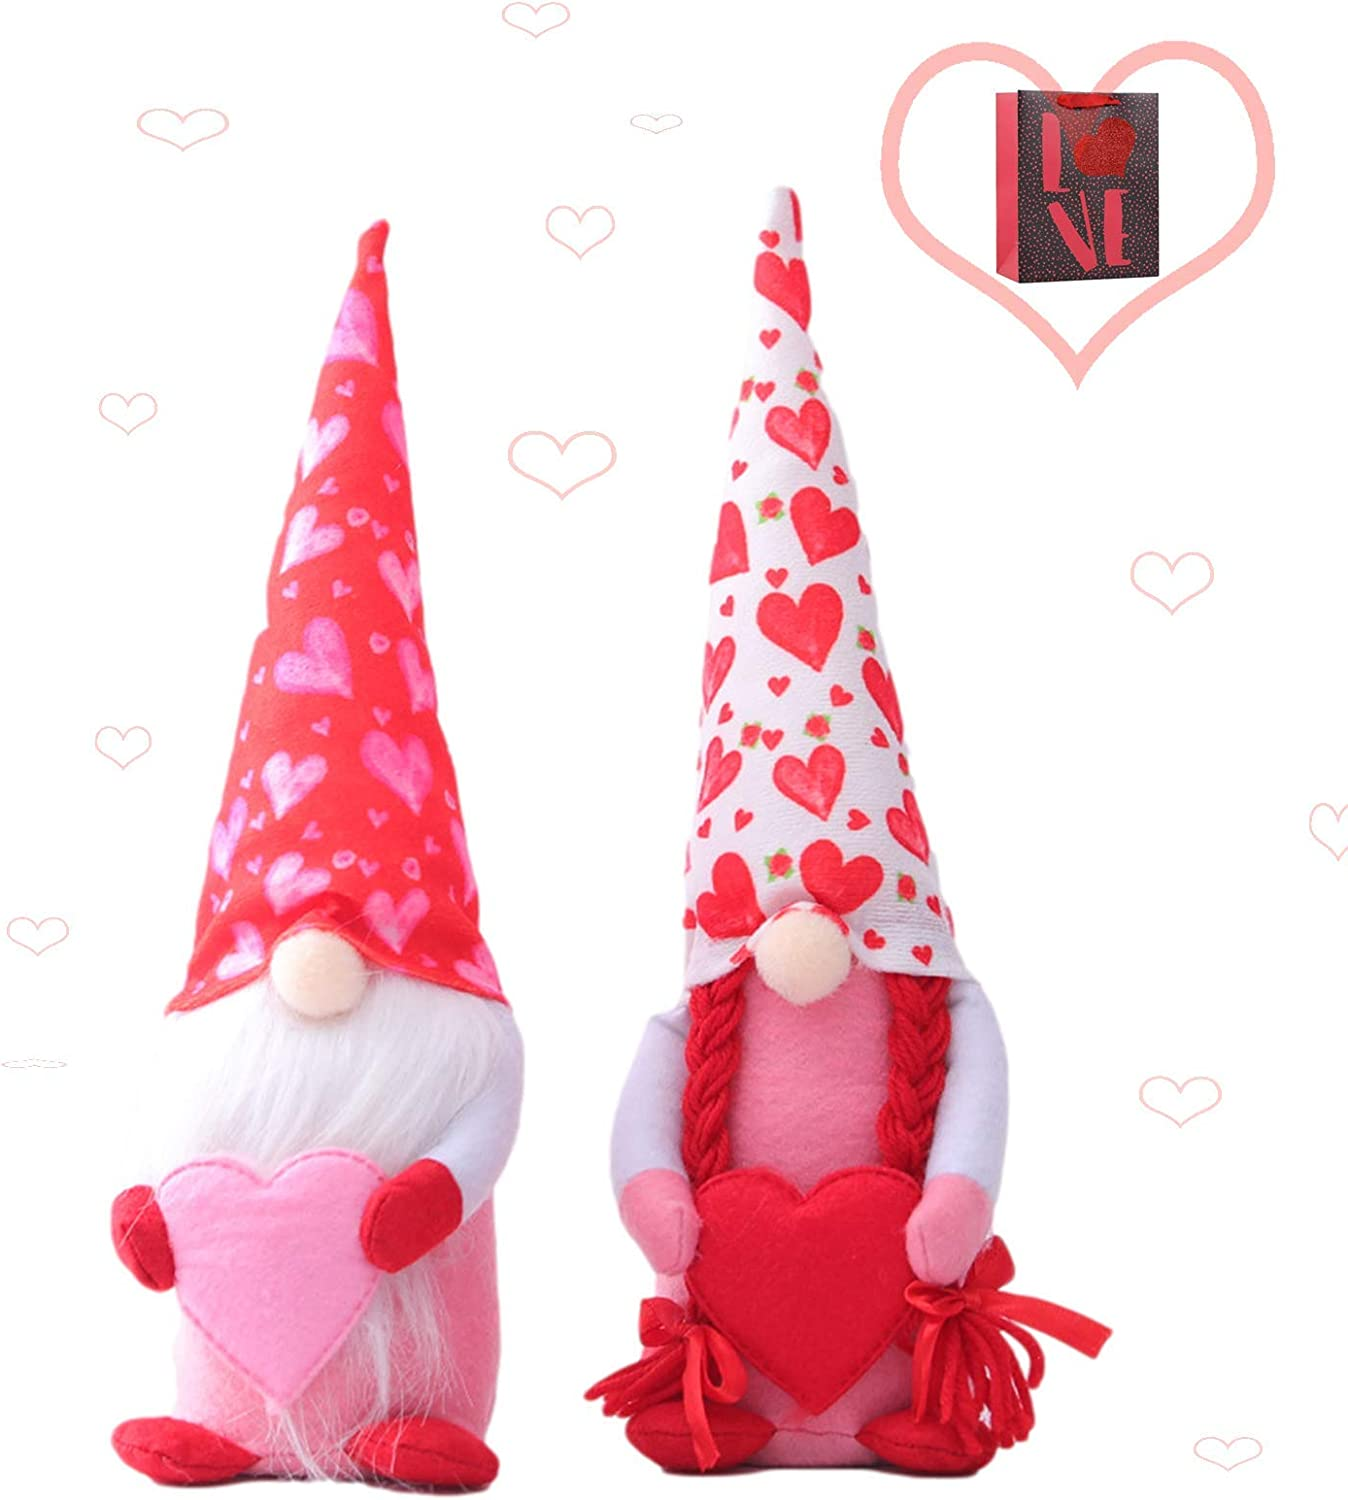 2 Pcs Birthday Gnomes Decoration, 2021 Handmade Faceless Doll Rudolph Plush Toy, Mr & Mrs Swedish Tomte Stuffed Gnomes Plush Doll Ornaments, Home Table Gnomes Decor, Mother's Day Gift(Heart 02)